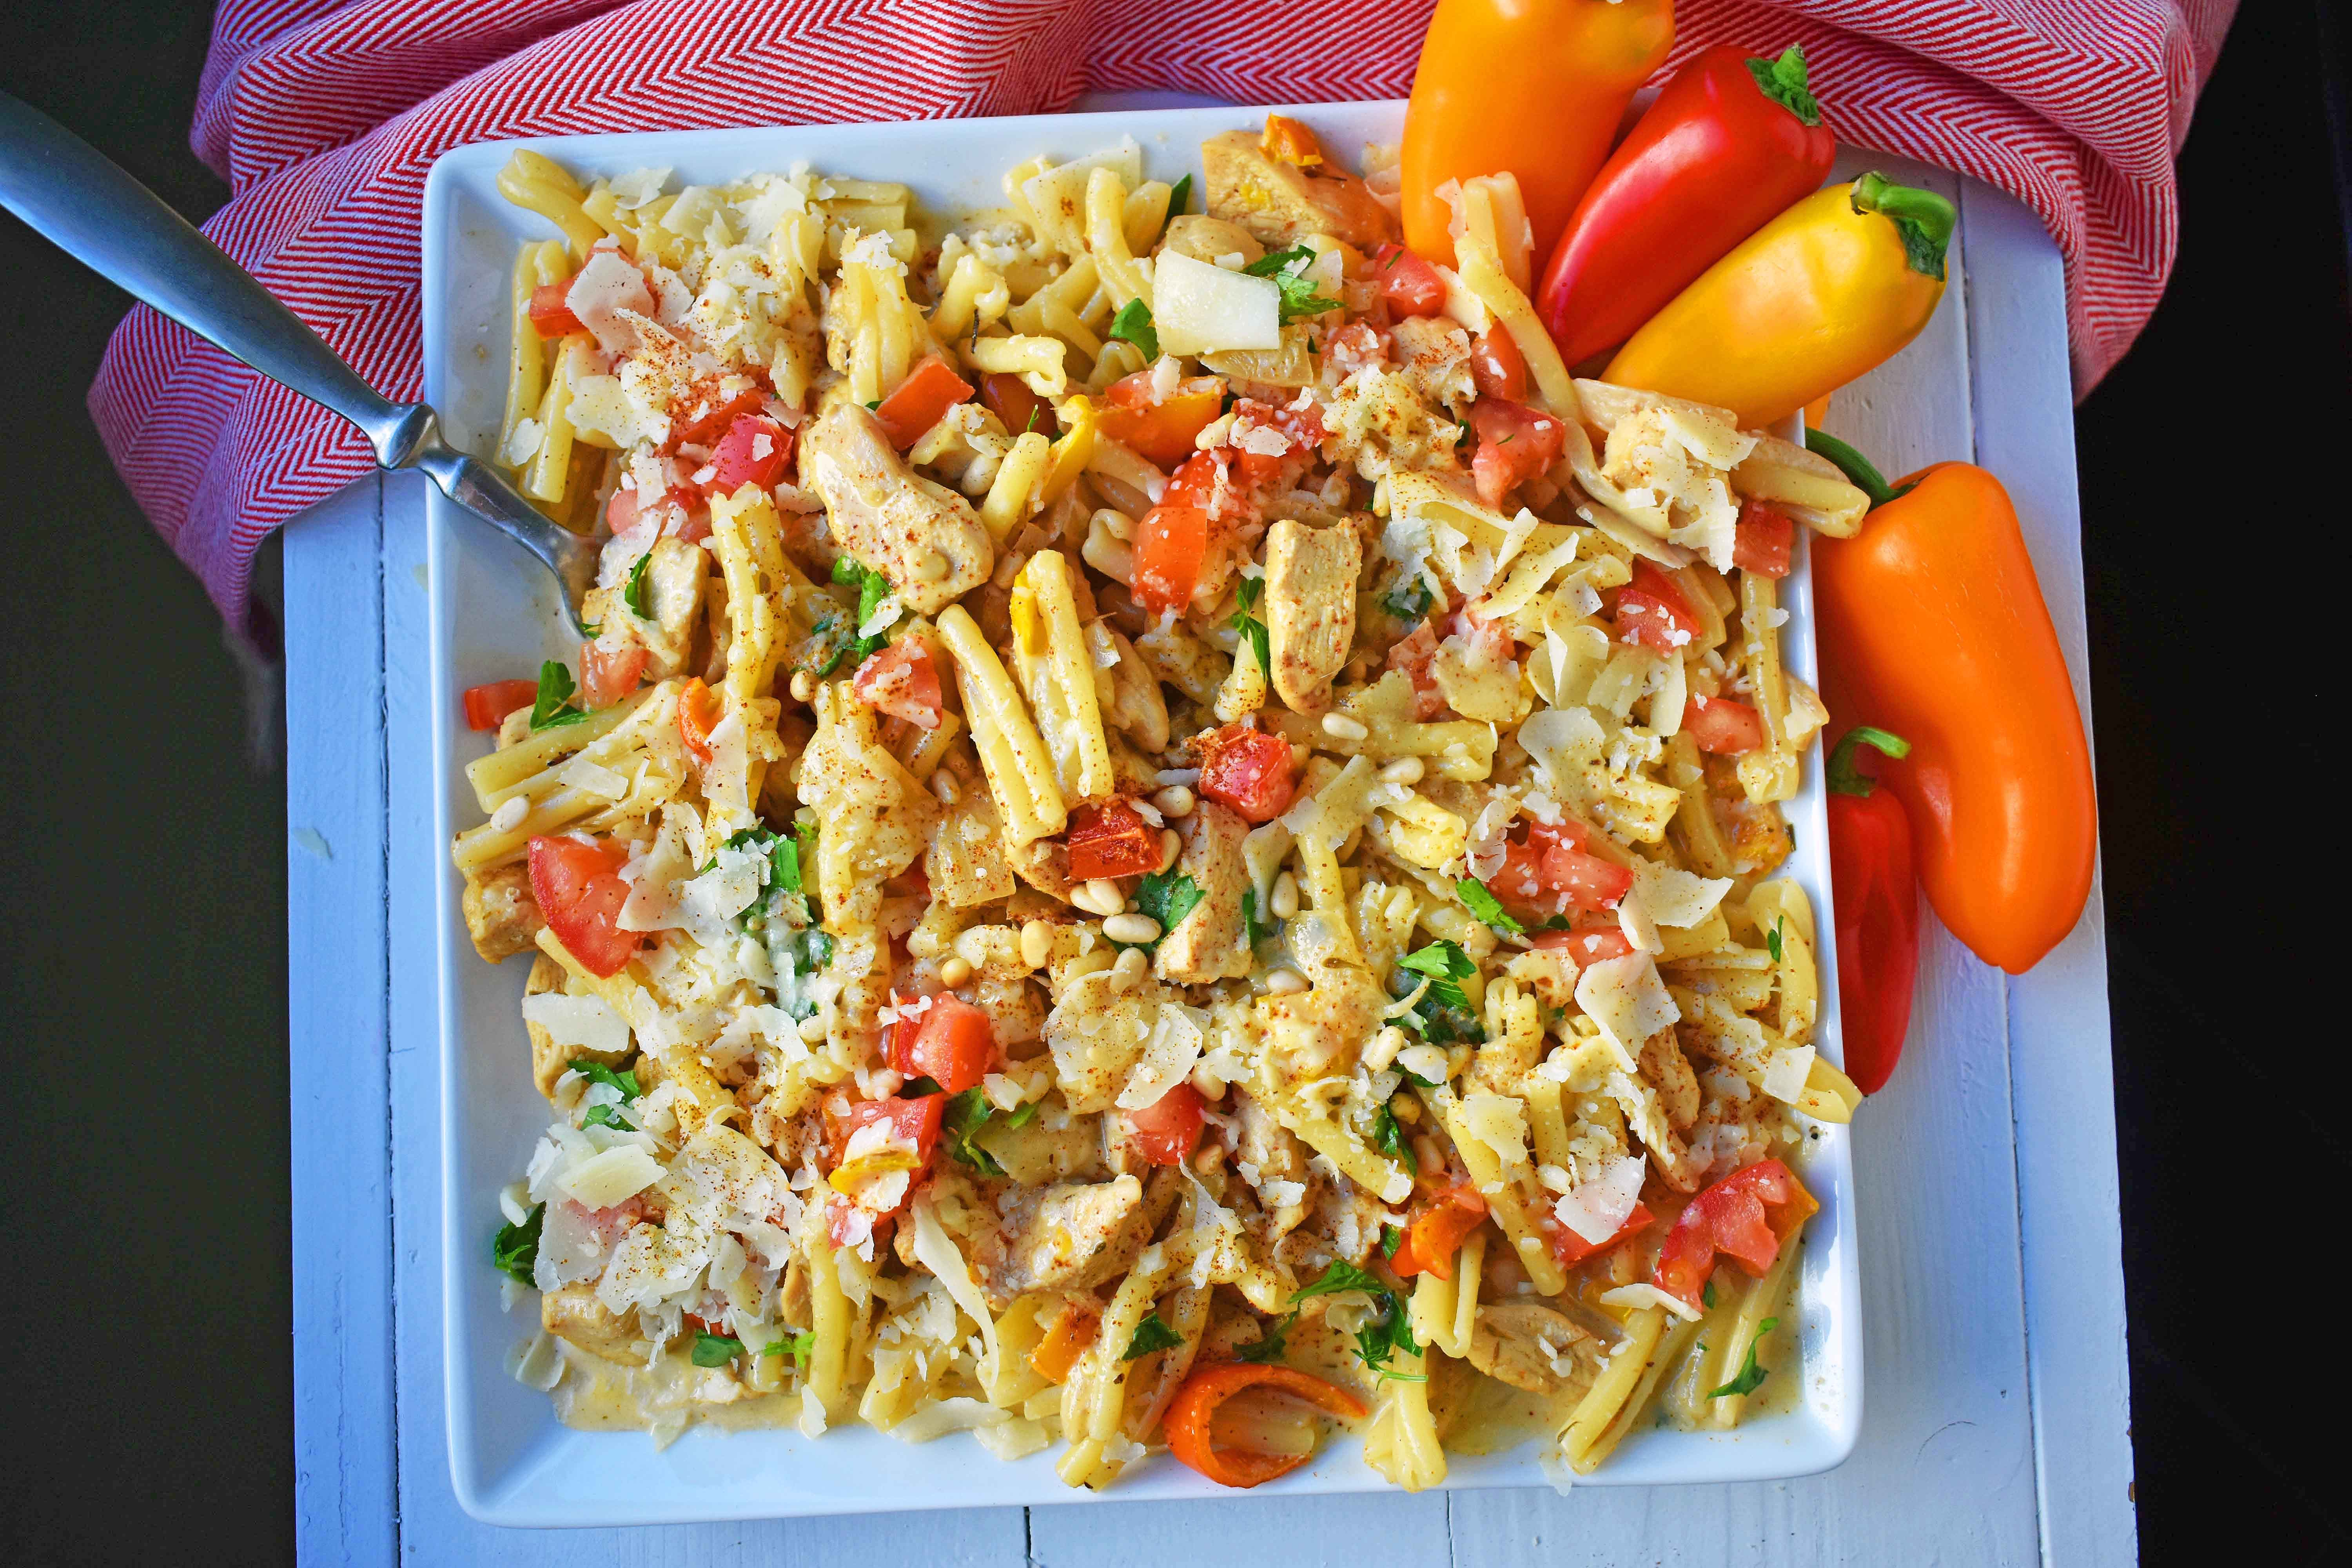 Cajun Louisiana Chicken Pasta made with onions, peppers, chicken, and cajun cream tossed with your favorite kind of pasta and topped with parmesan cheese and pine nuts. A super flavorful creamy pasta dish. www.modernhoney.com